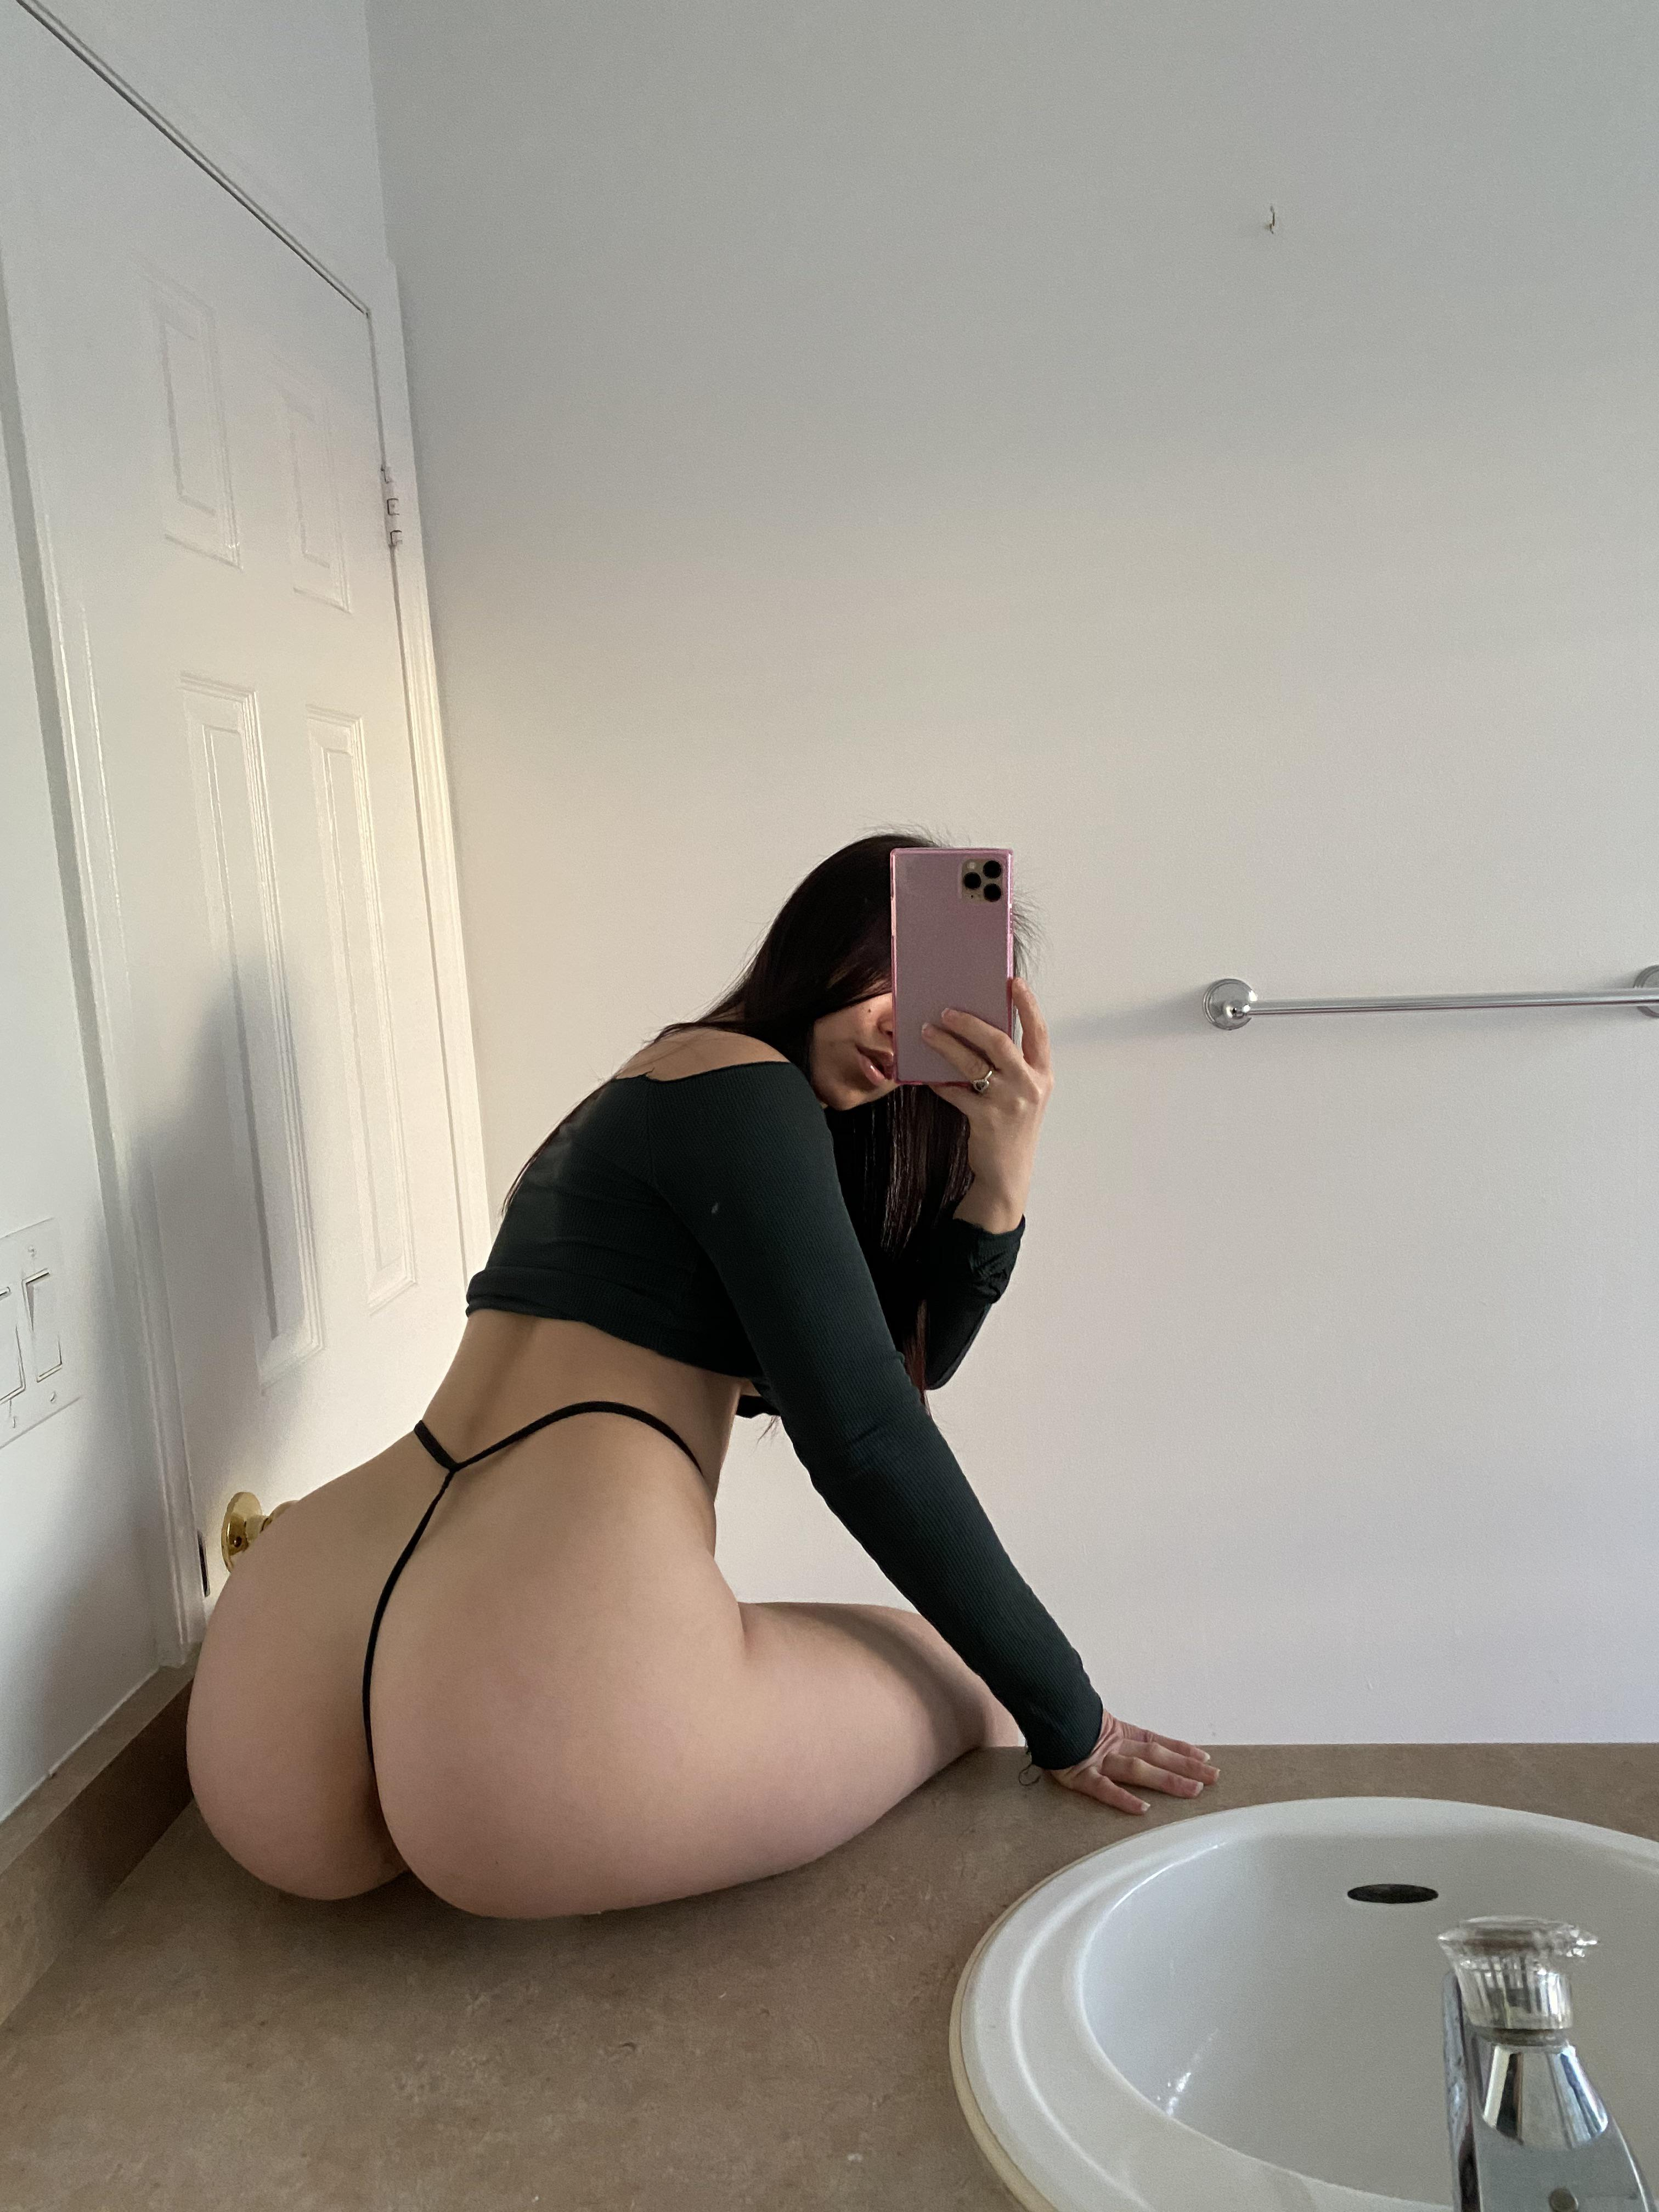 One of our naked asian pics called Can I bounce on your cock?